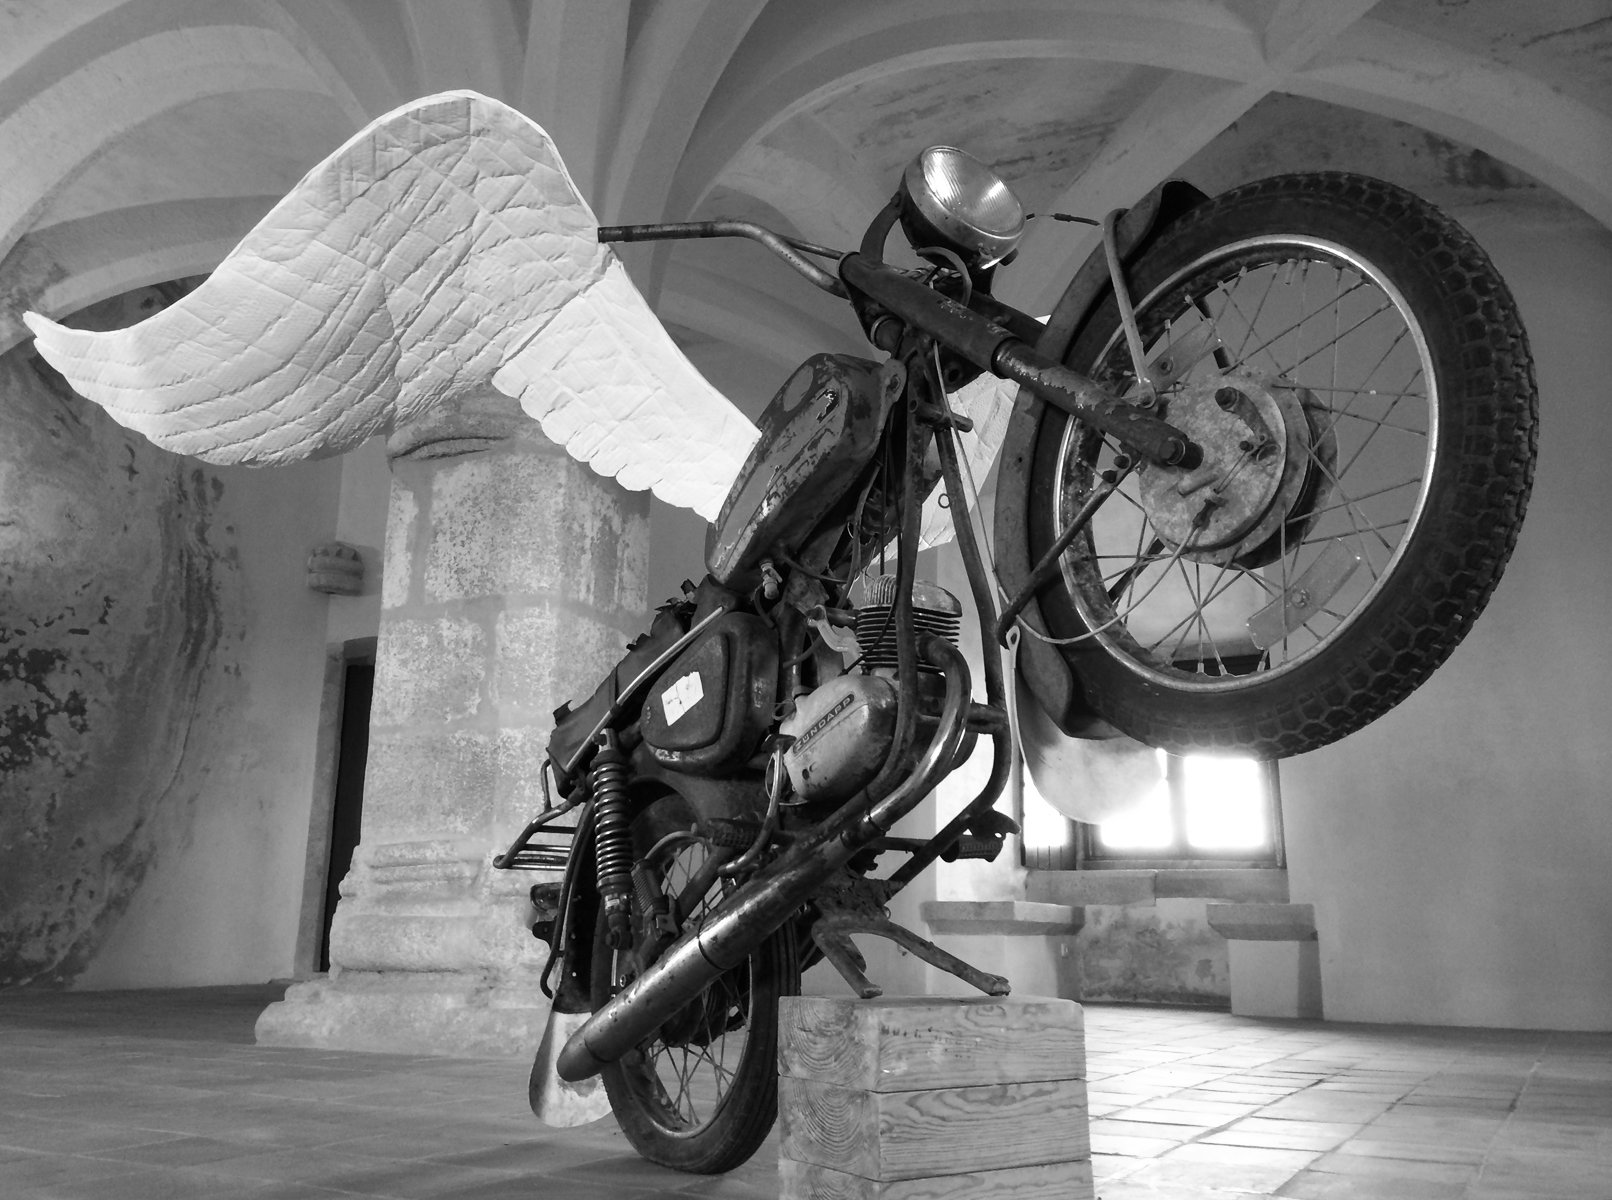 A rearing motorcycle with large white wings in a room with a vaulted ceiling.